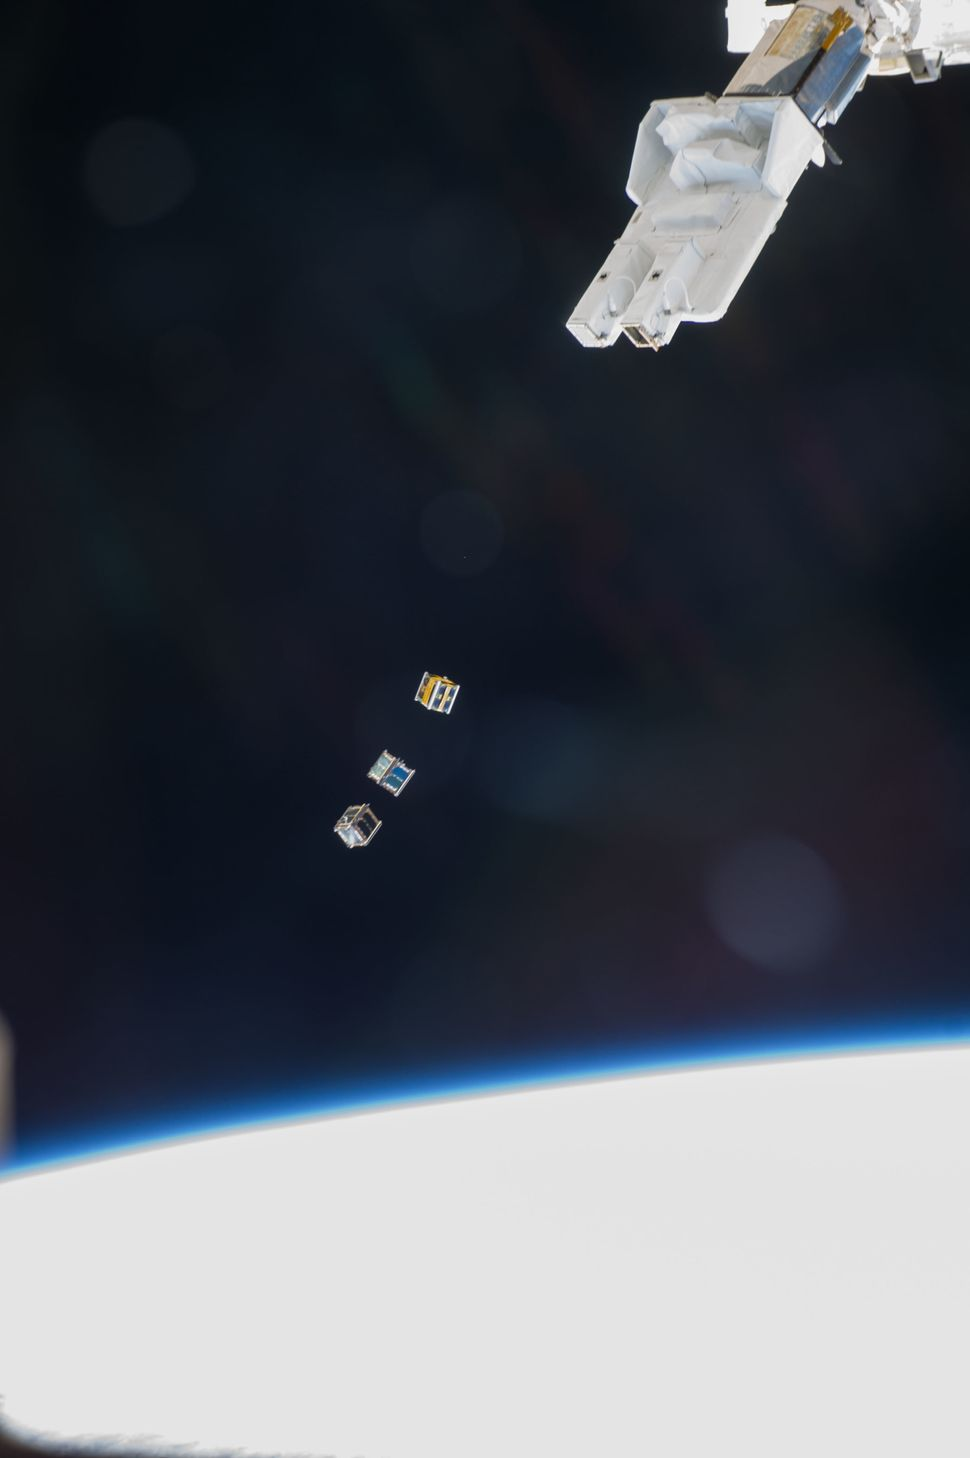 These nanosatellites, or cubesats, were deployed by the International Space Station's Small Satellite Orbital Deployer on Nov